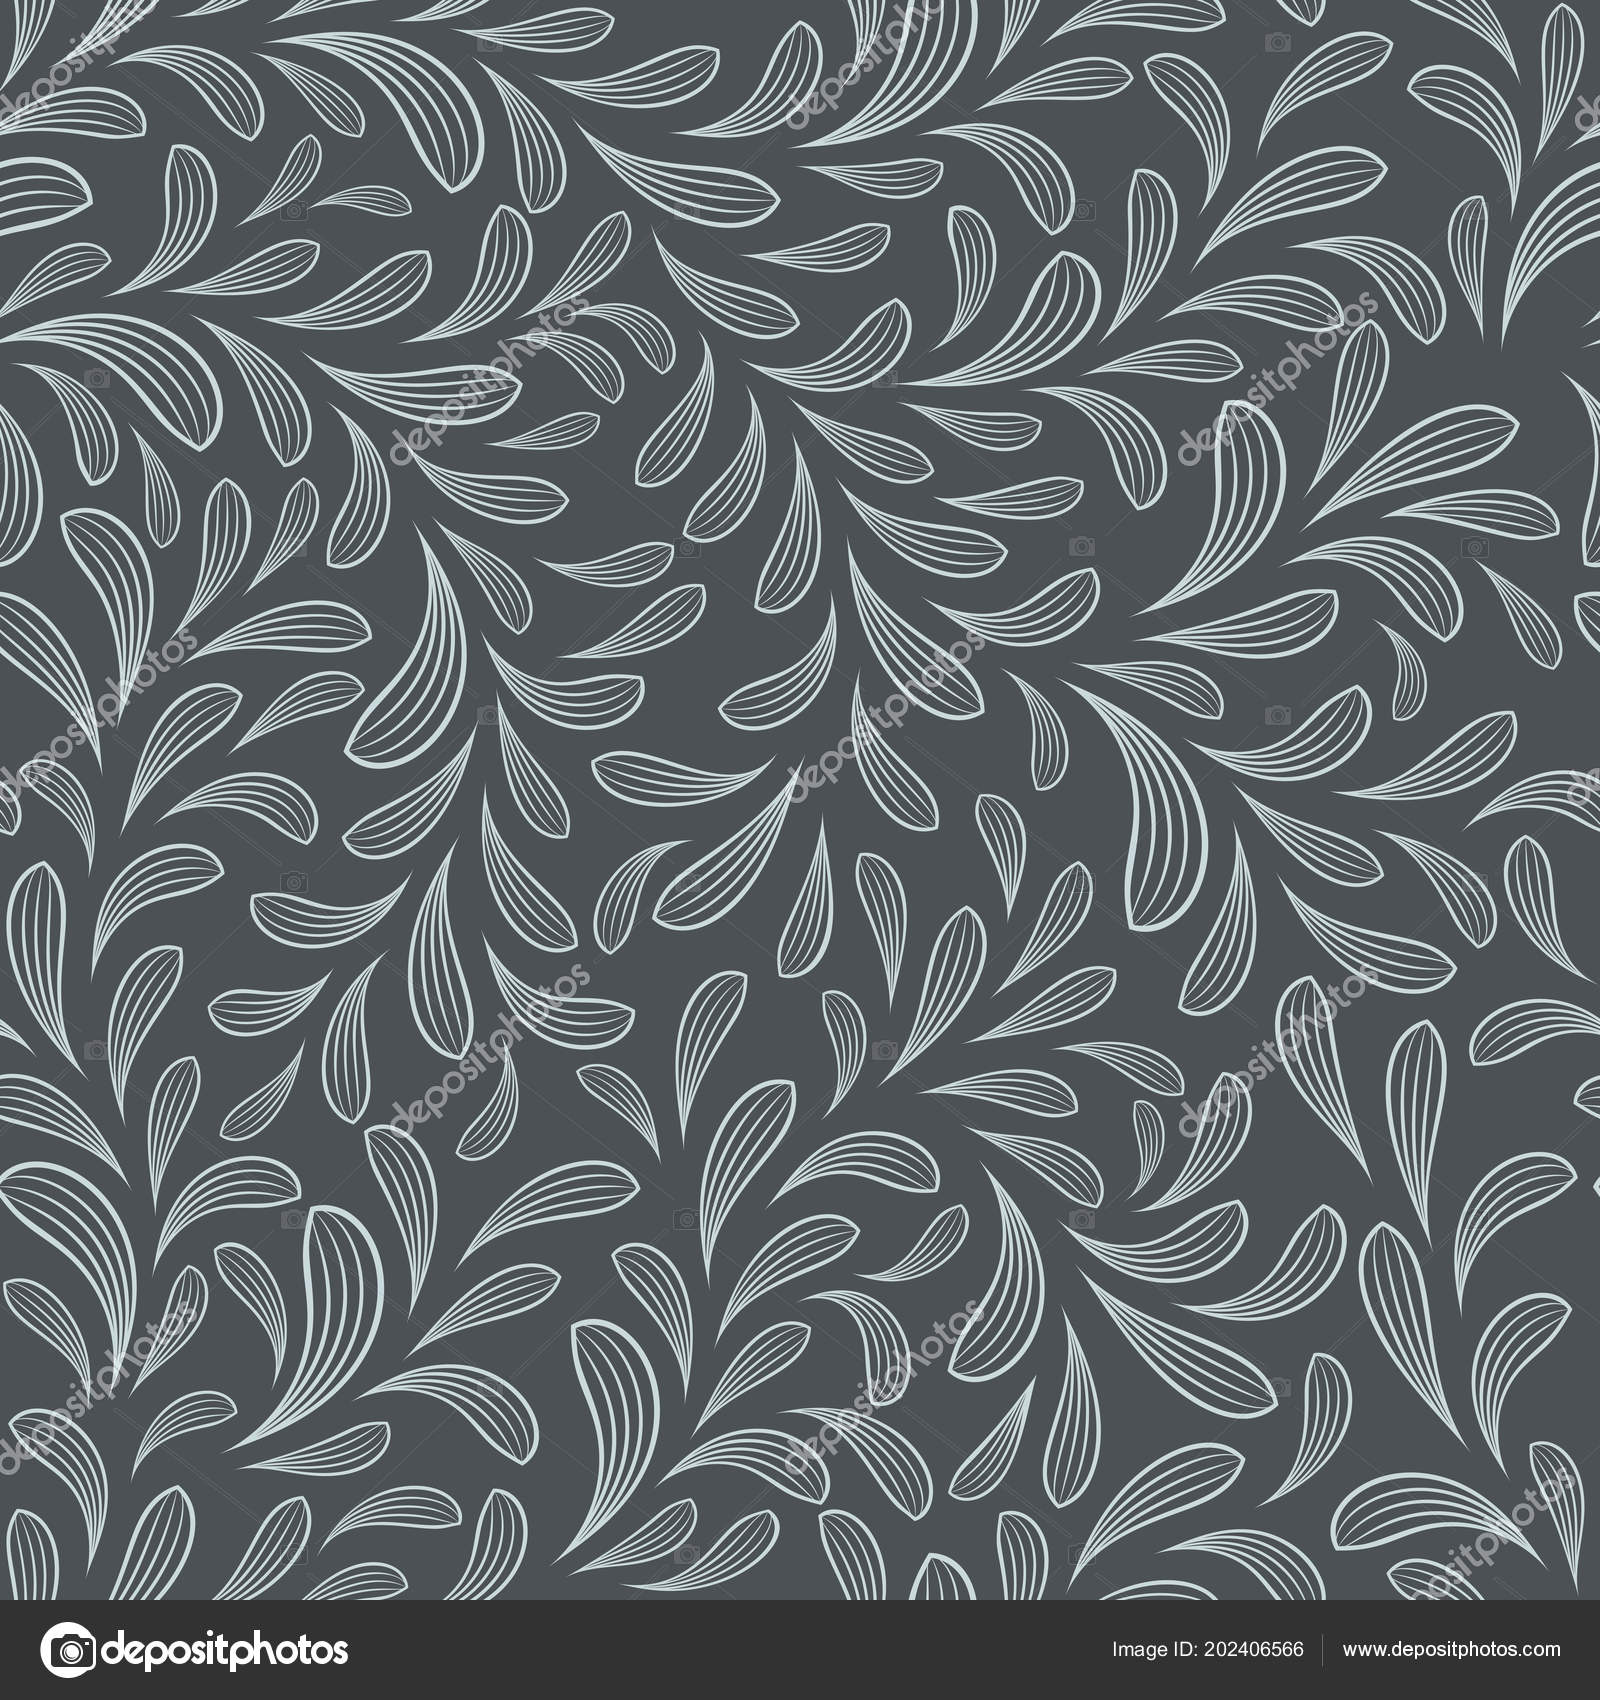 Seamless Abstract Floral Vector Background Wallpaper Pattern Stock Vector C Lenapix 202406566